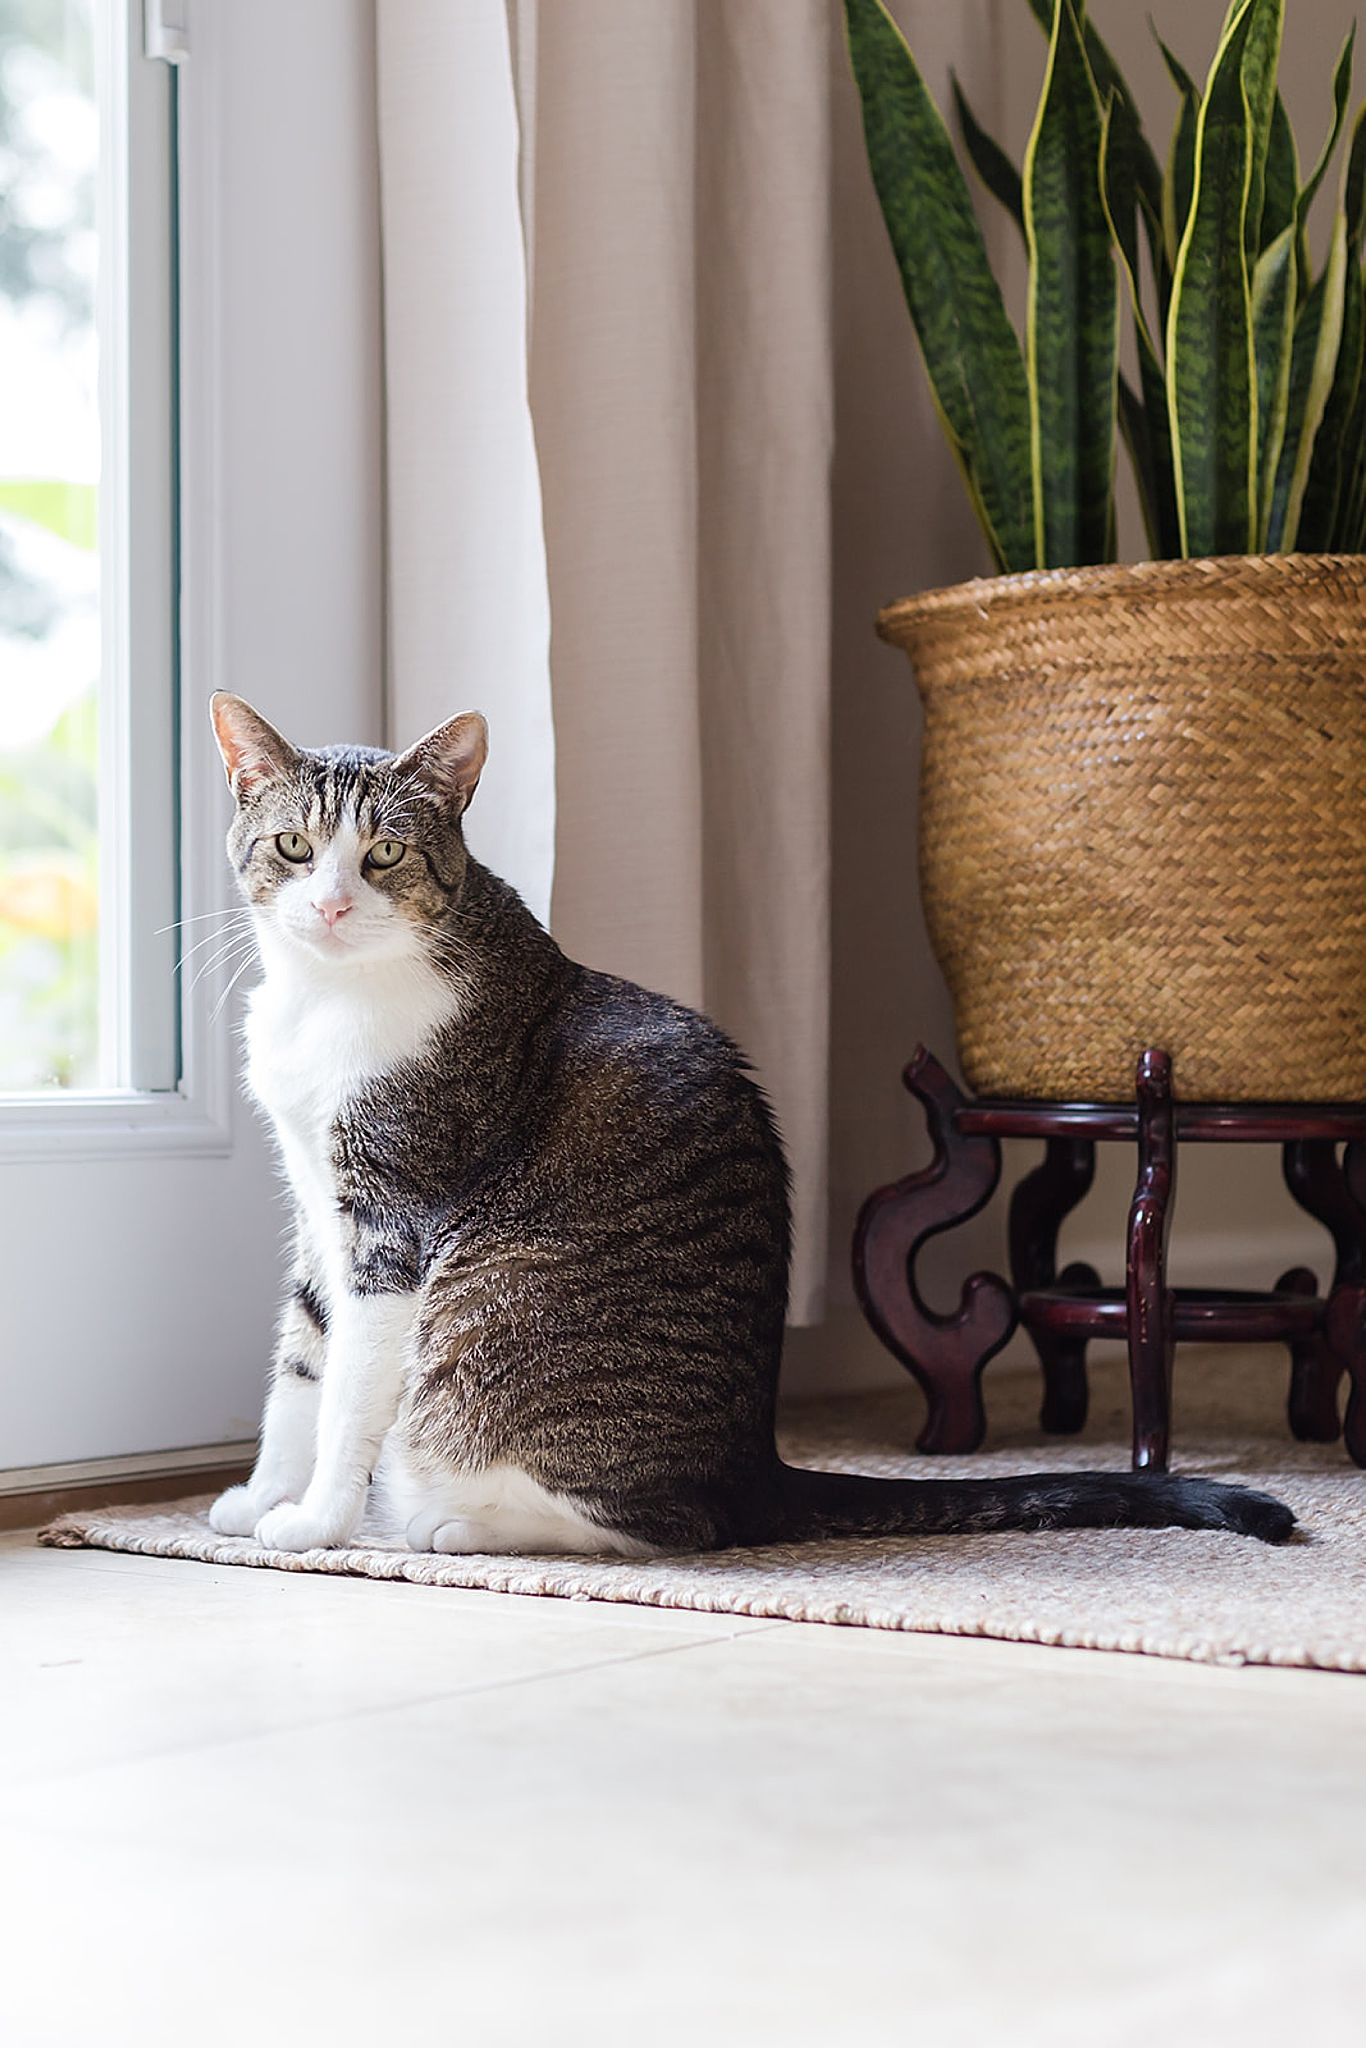 cat poses by window in home studio